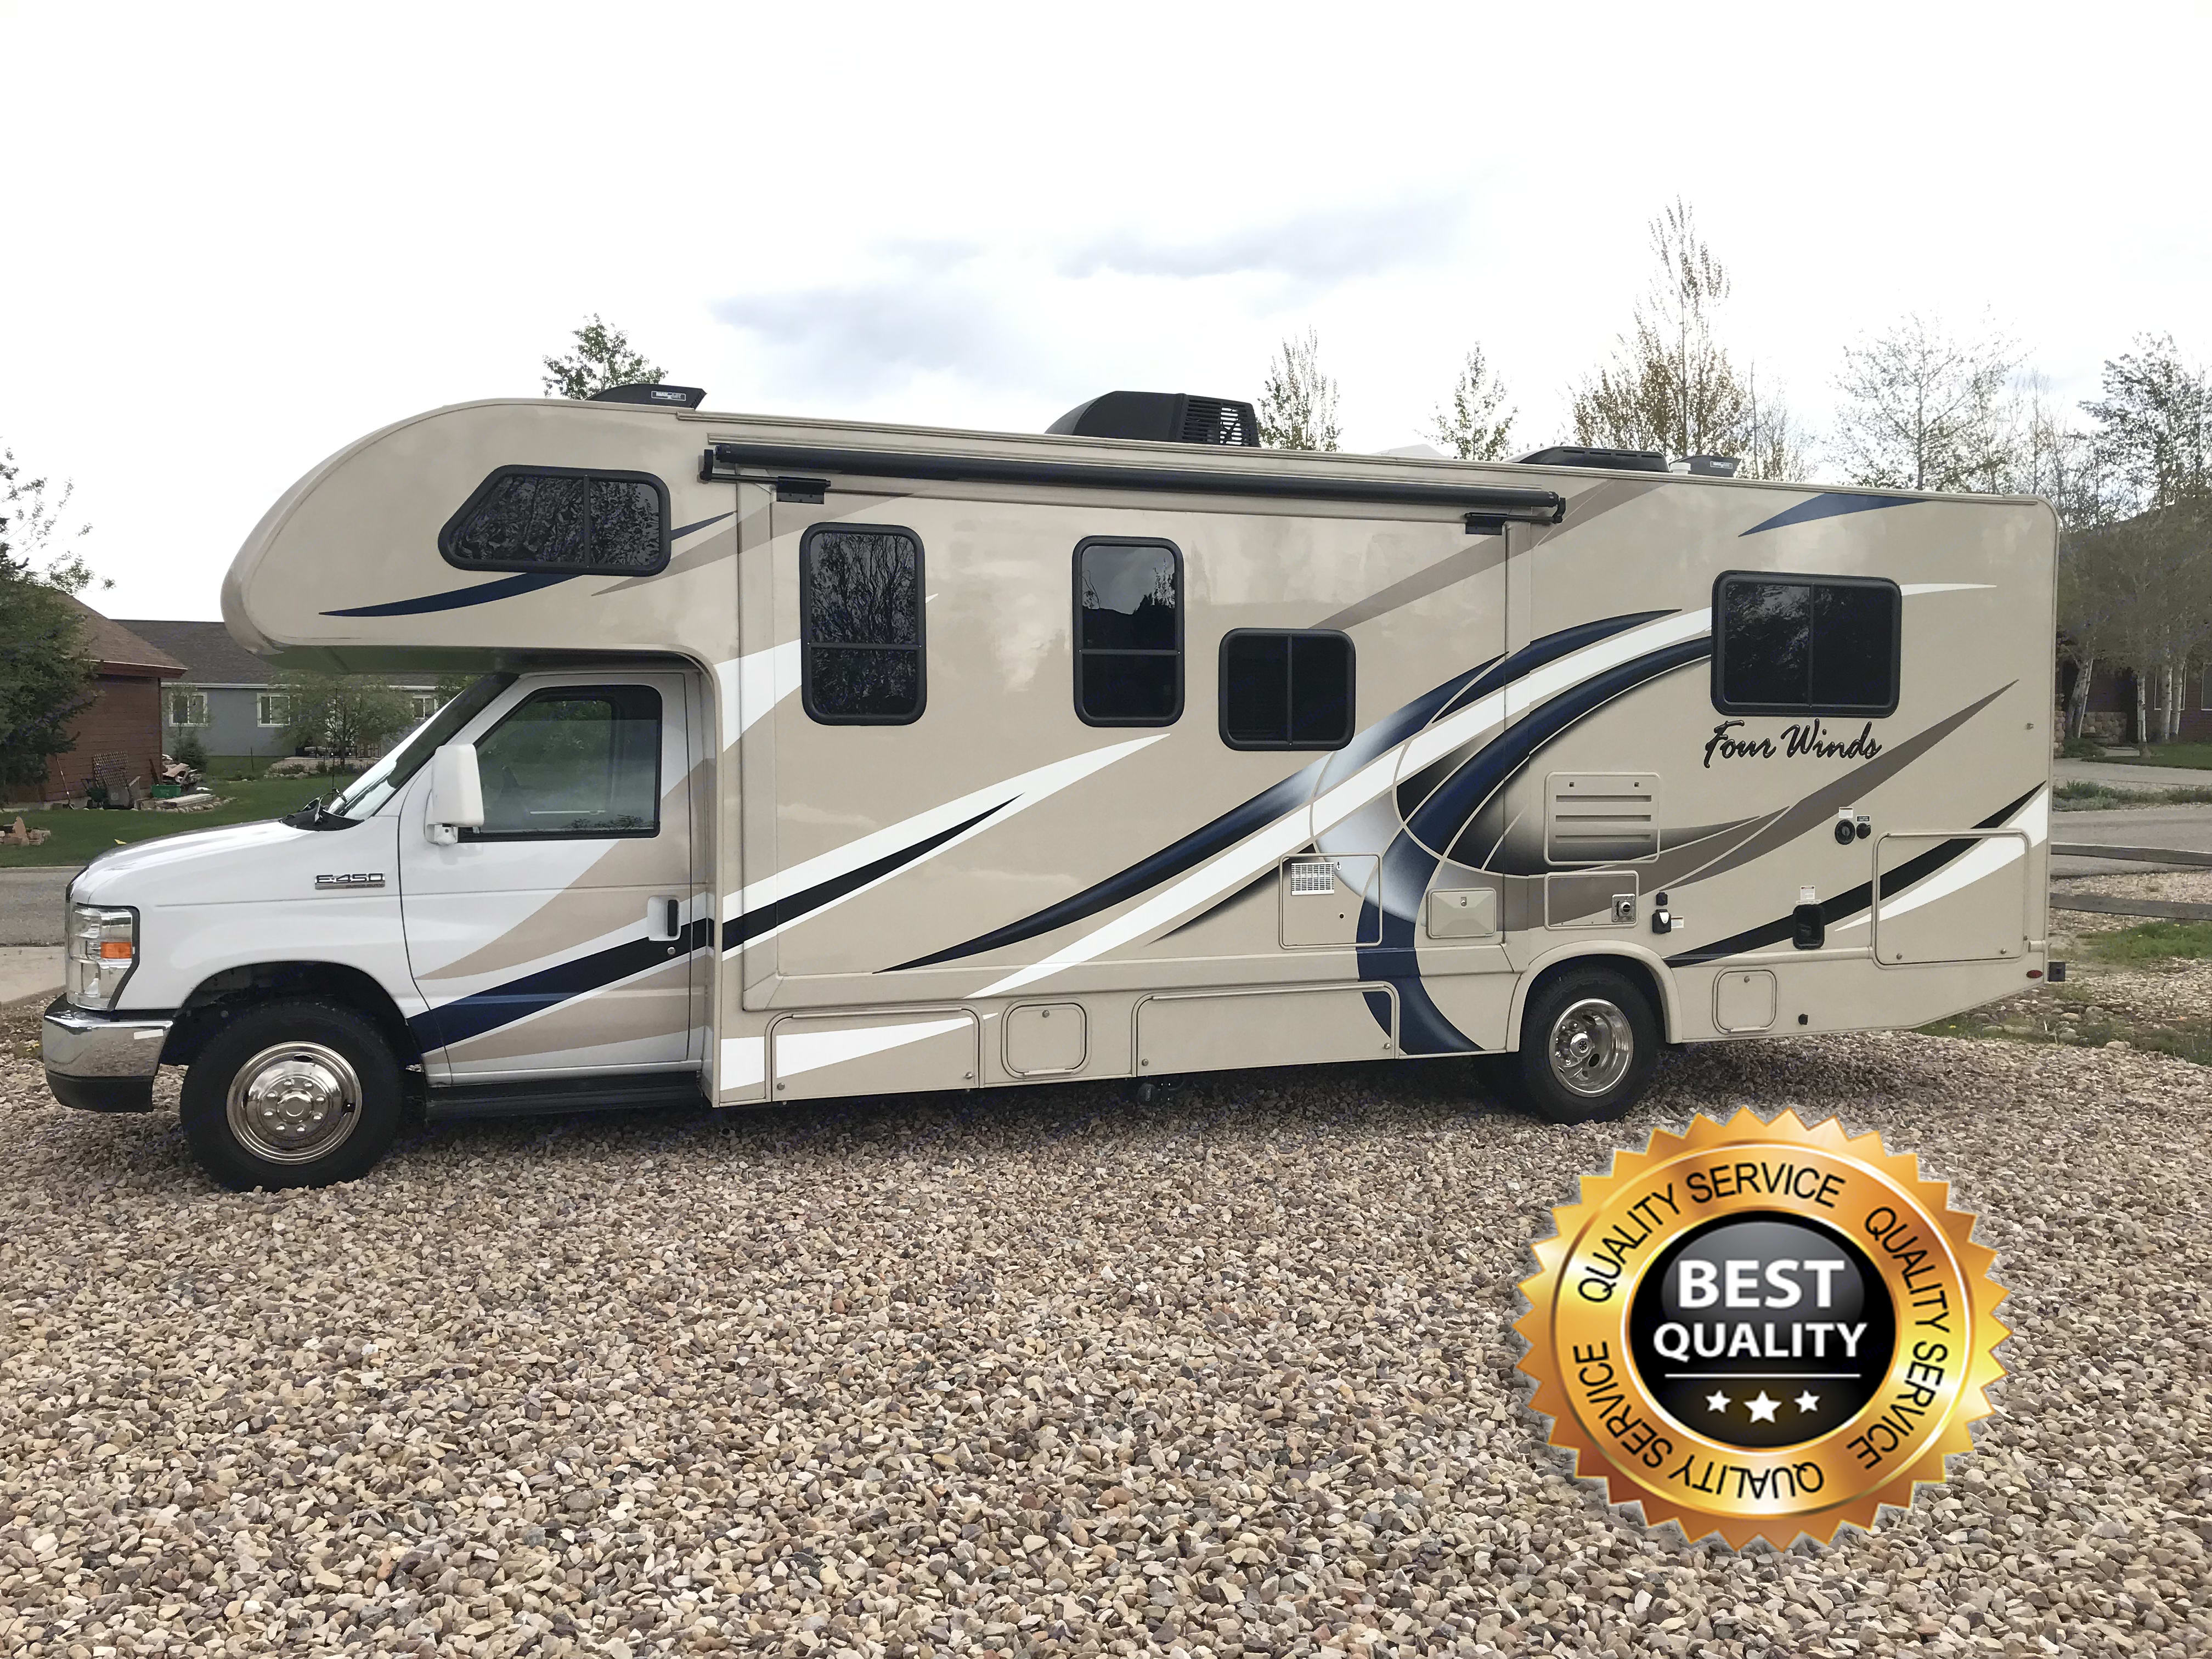 Make your vacation awesome by taking this comfortable, spacious, high-end motor home!. Thor Motor Coach Four Winds 2018